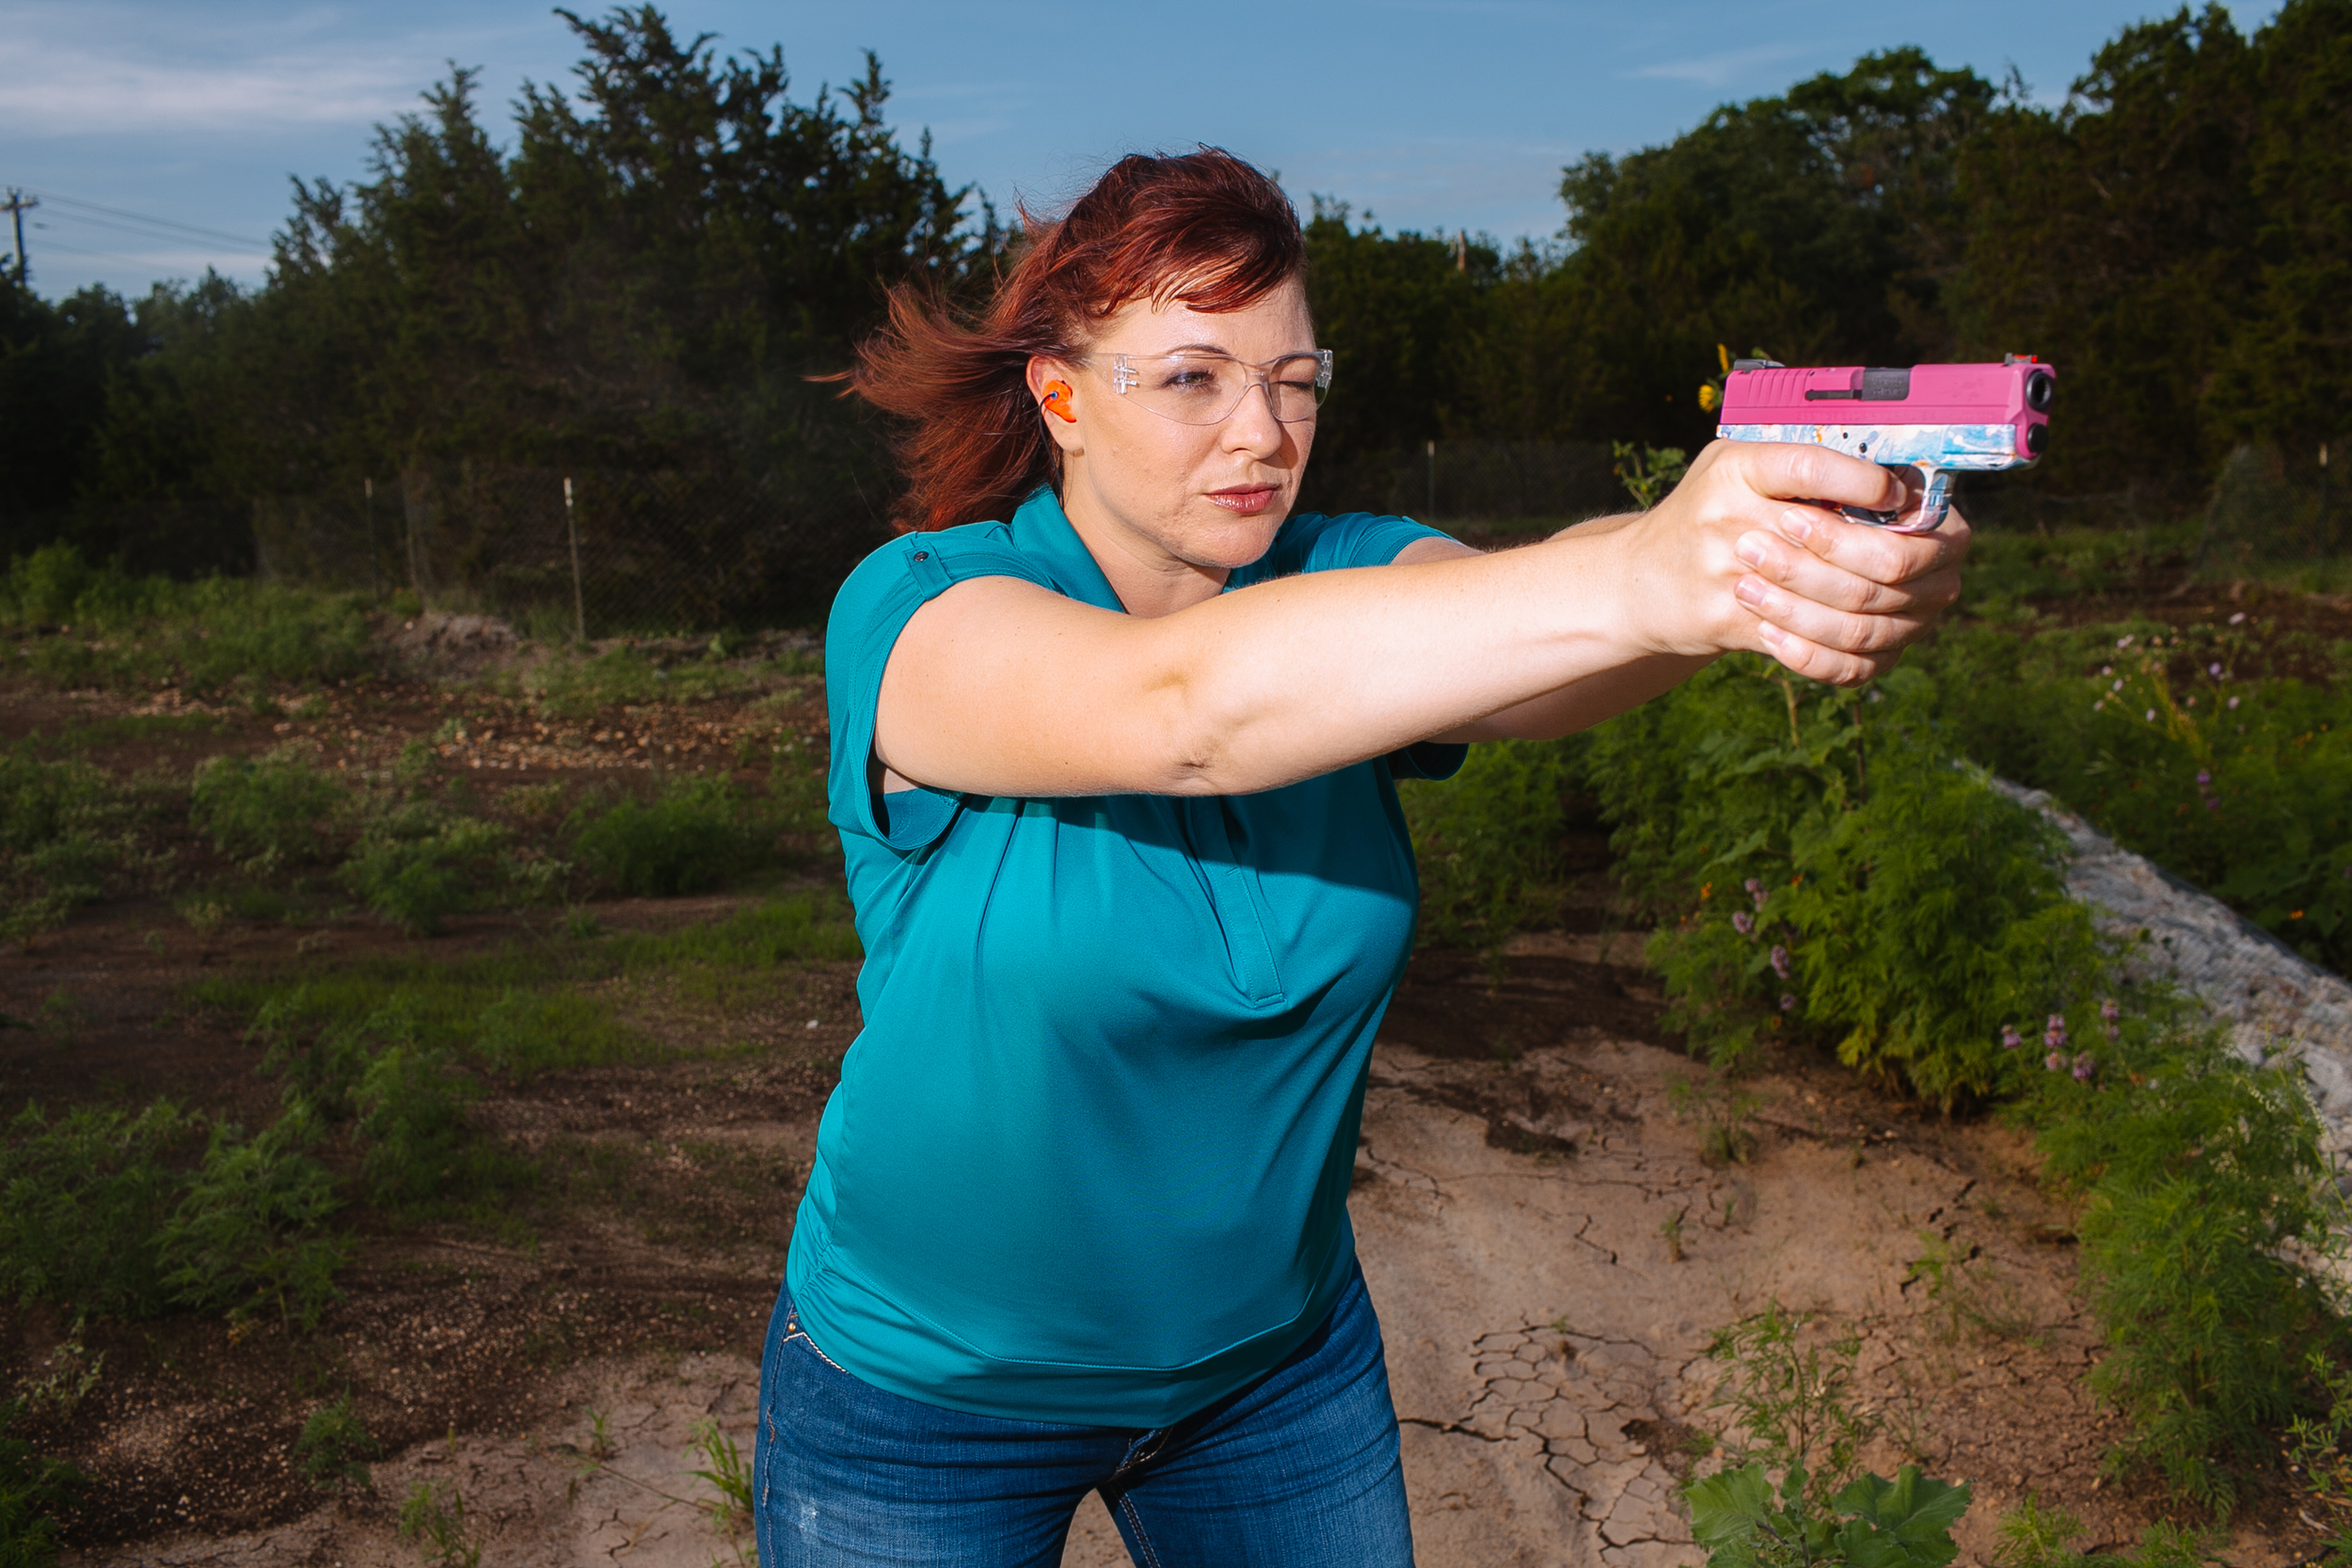 Julianna Crowder, director and founder of A Girl And A Gun, demonstrates proper and safe gun use with an unloaded concealed handgun designed in a floral print at the Shady Oaks Gun Range in Austin, Texas.